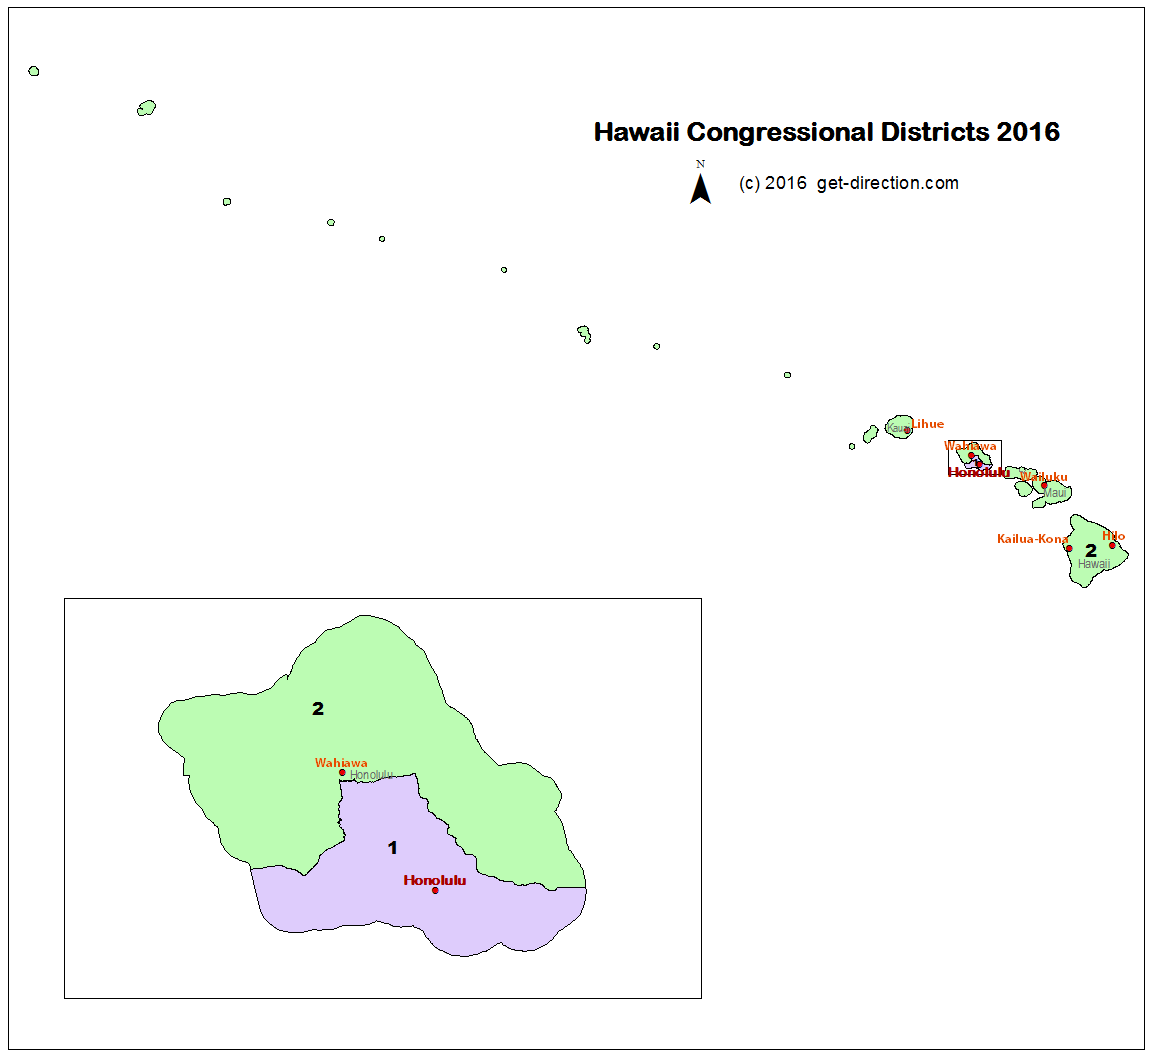 hawaii-congressional-districts-2016.png